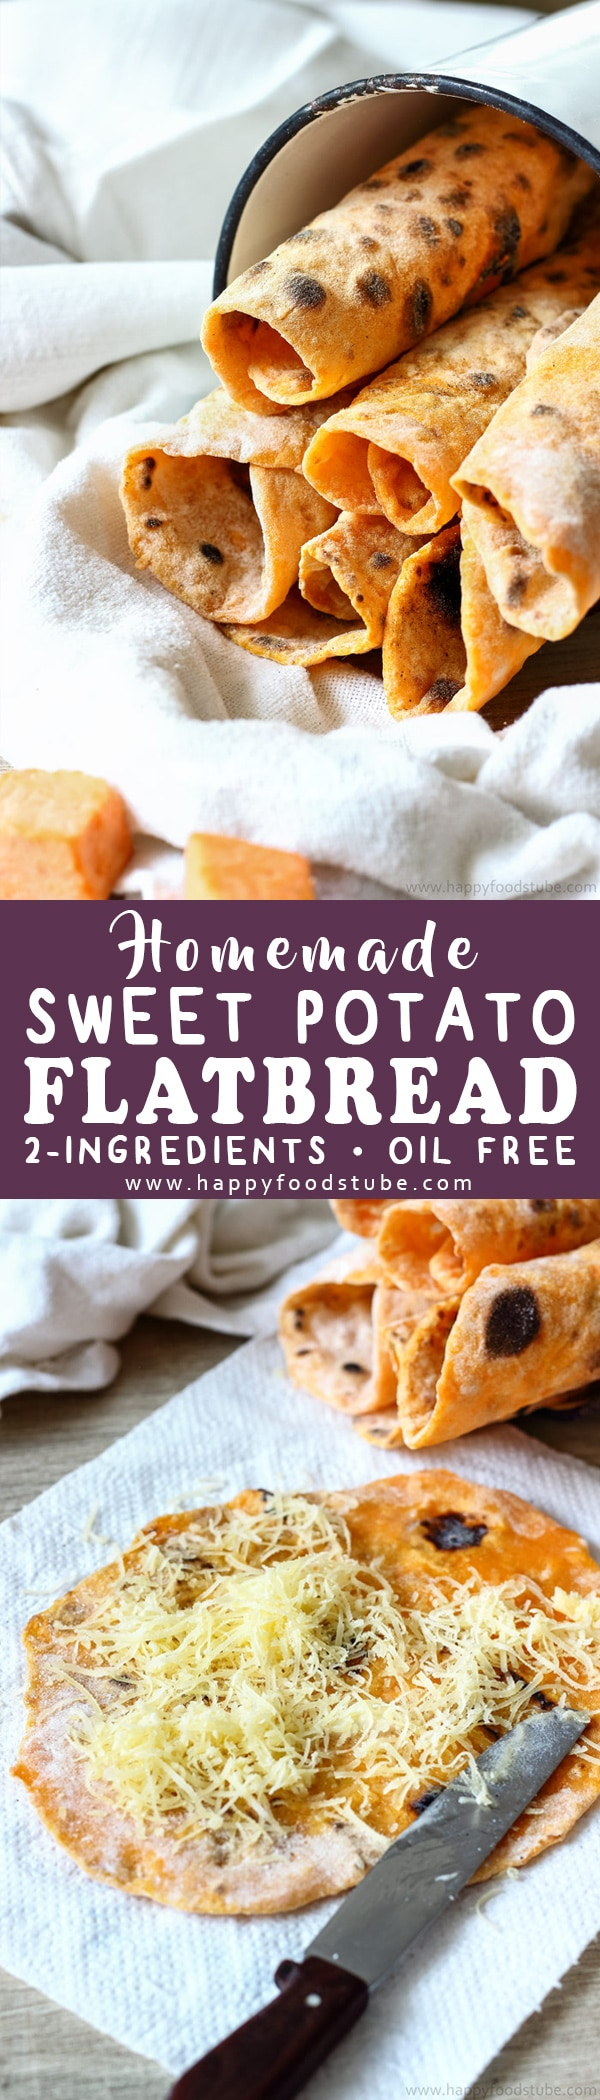 Homemade sweet potato flatbread is a delicious 2-ingredient side dish. This oil-free and yeast free flatbread goes well with curry, duck or grilled meats. Step by step how to make flatbread. Easy sweet potato flatbread recipe